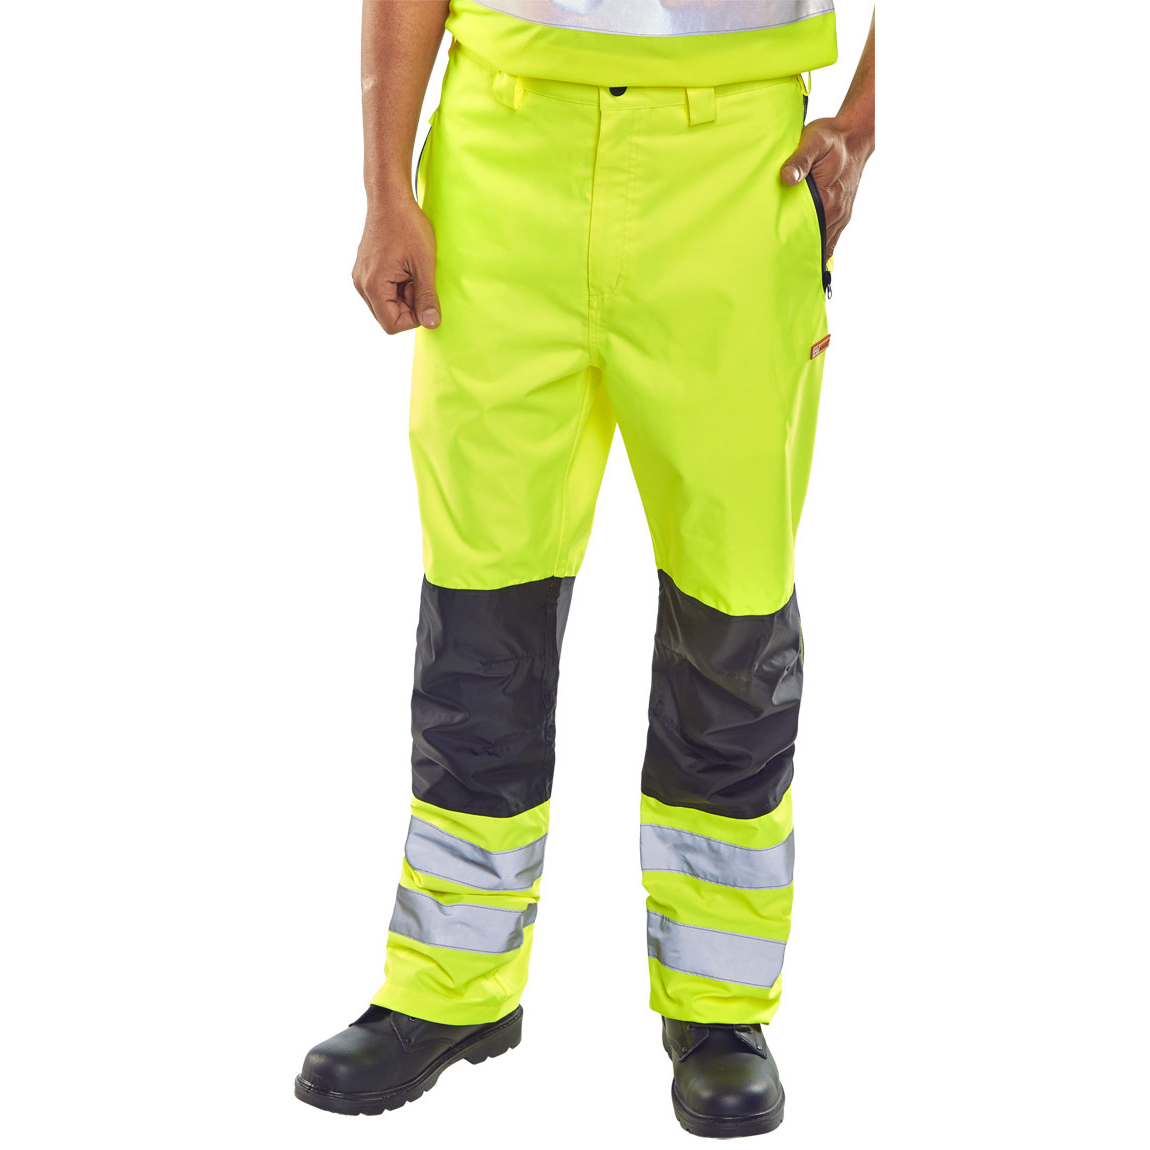 B-Seen Contrast Trousers Hi-Vis Waterproof 4XL Saturn Yellow Ref BD85SY4XL *Up to 3 Day Leadtime*